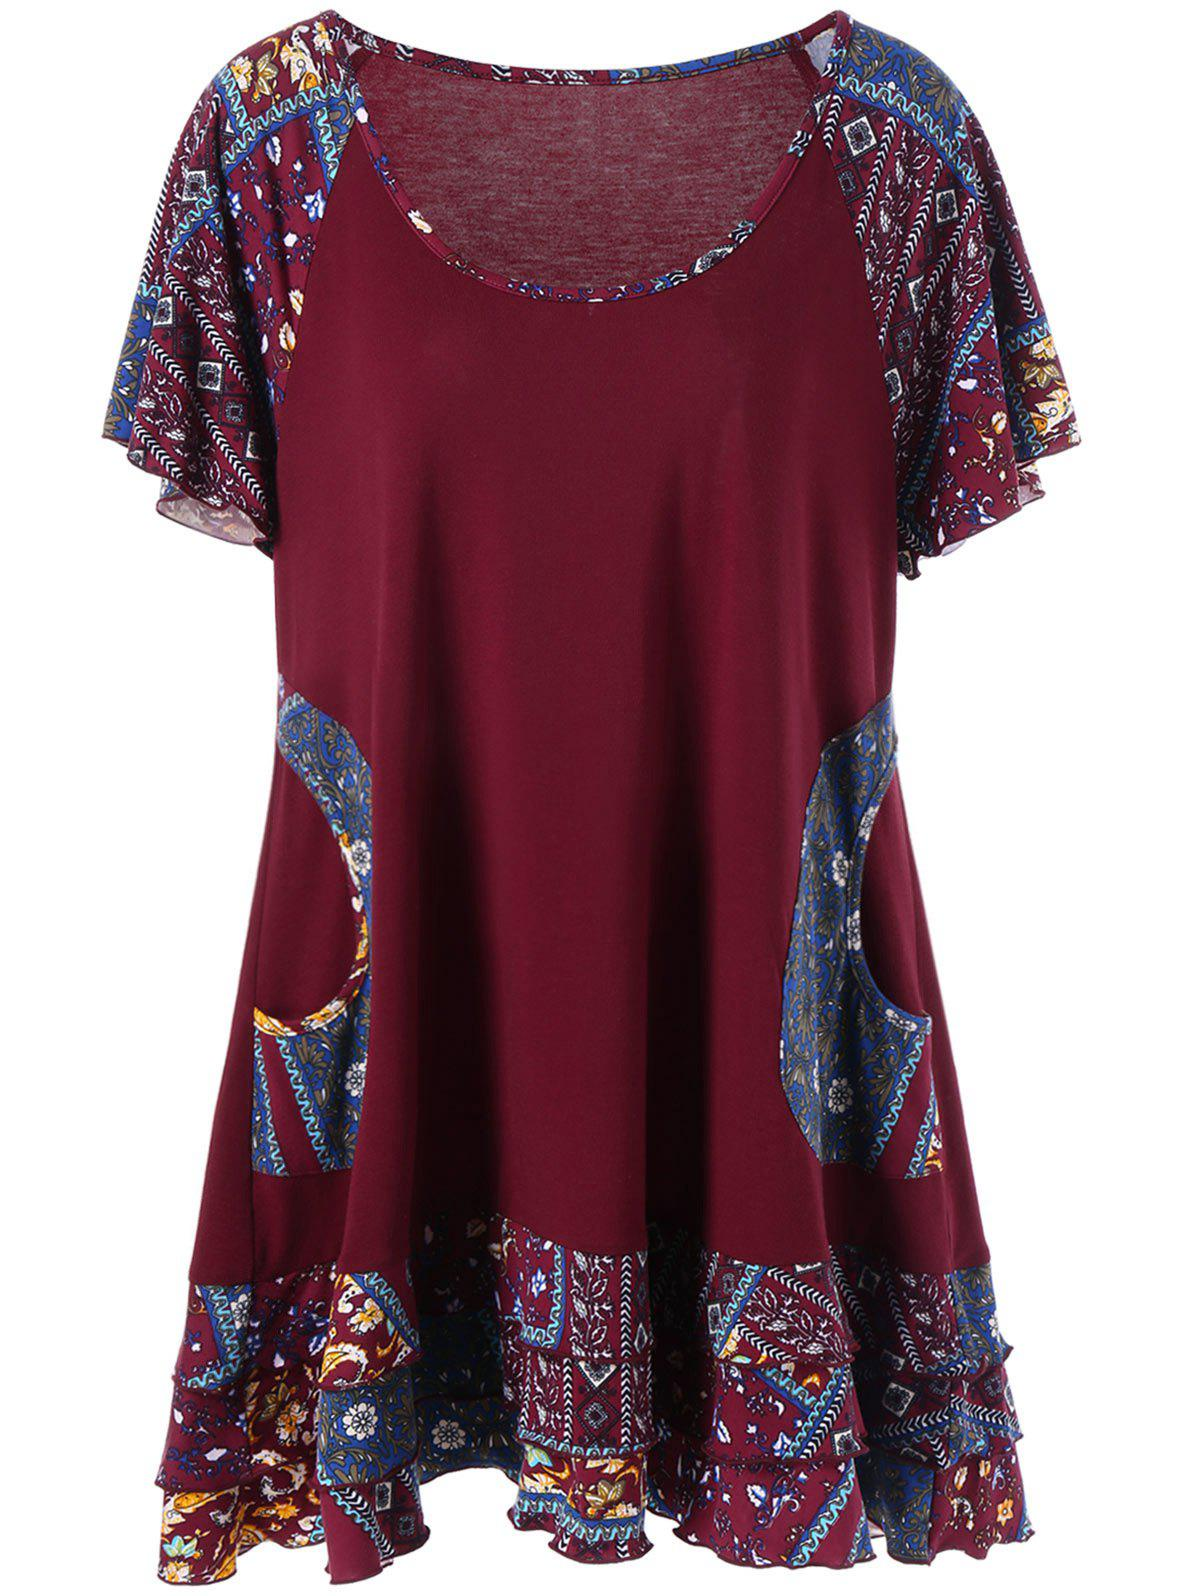 Plus Size Raglan Sleeve Layered Top with PocketsWOMEN<br><br>Size: XL; Color: DEEP RED; Material: Polyester,Spandex; Shirt Length: Long; Sleeve Length: Short; Collar: Scoop Neck; Style: Casual; Season: Summer; Pattern Type: Floral; Weight: 0.3500kg; Package Contents: 1 x Top;